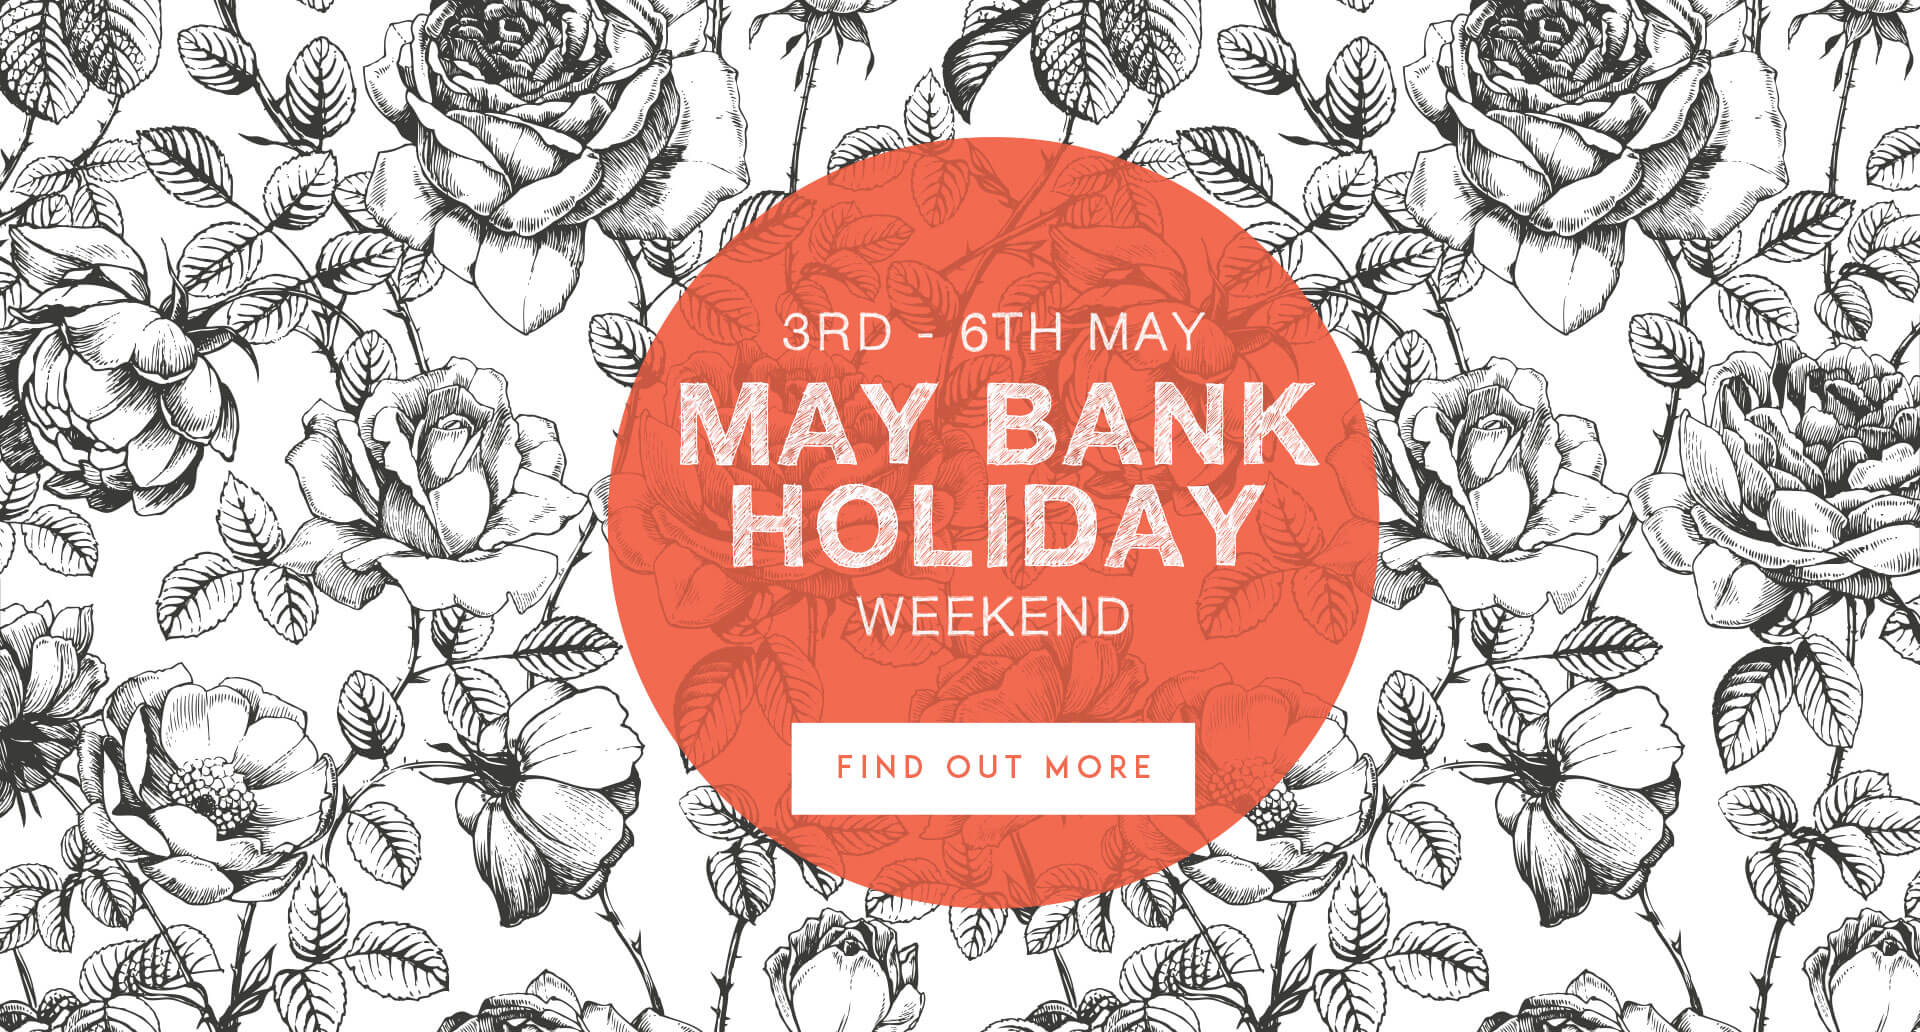 May Bank Holiday at The Maid Of Muswell